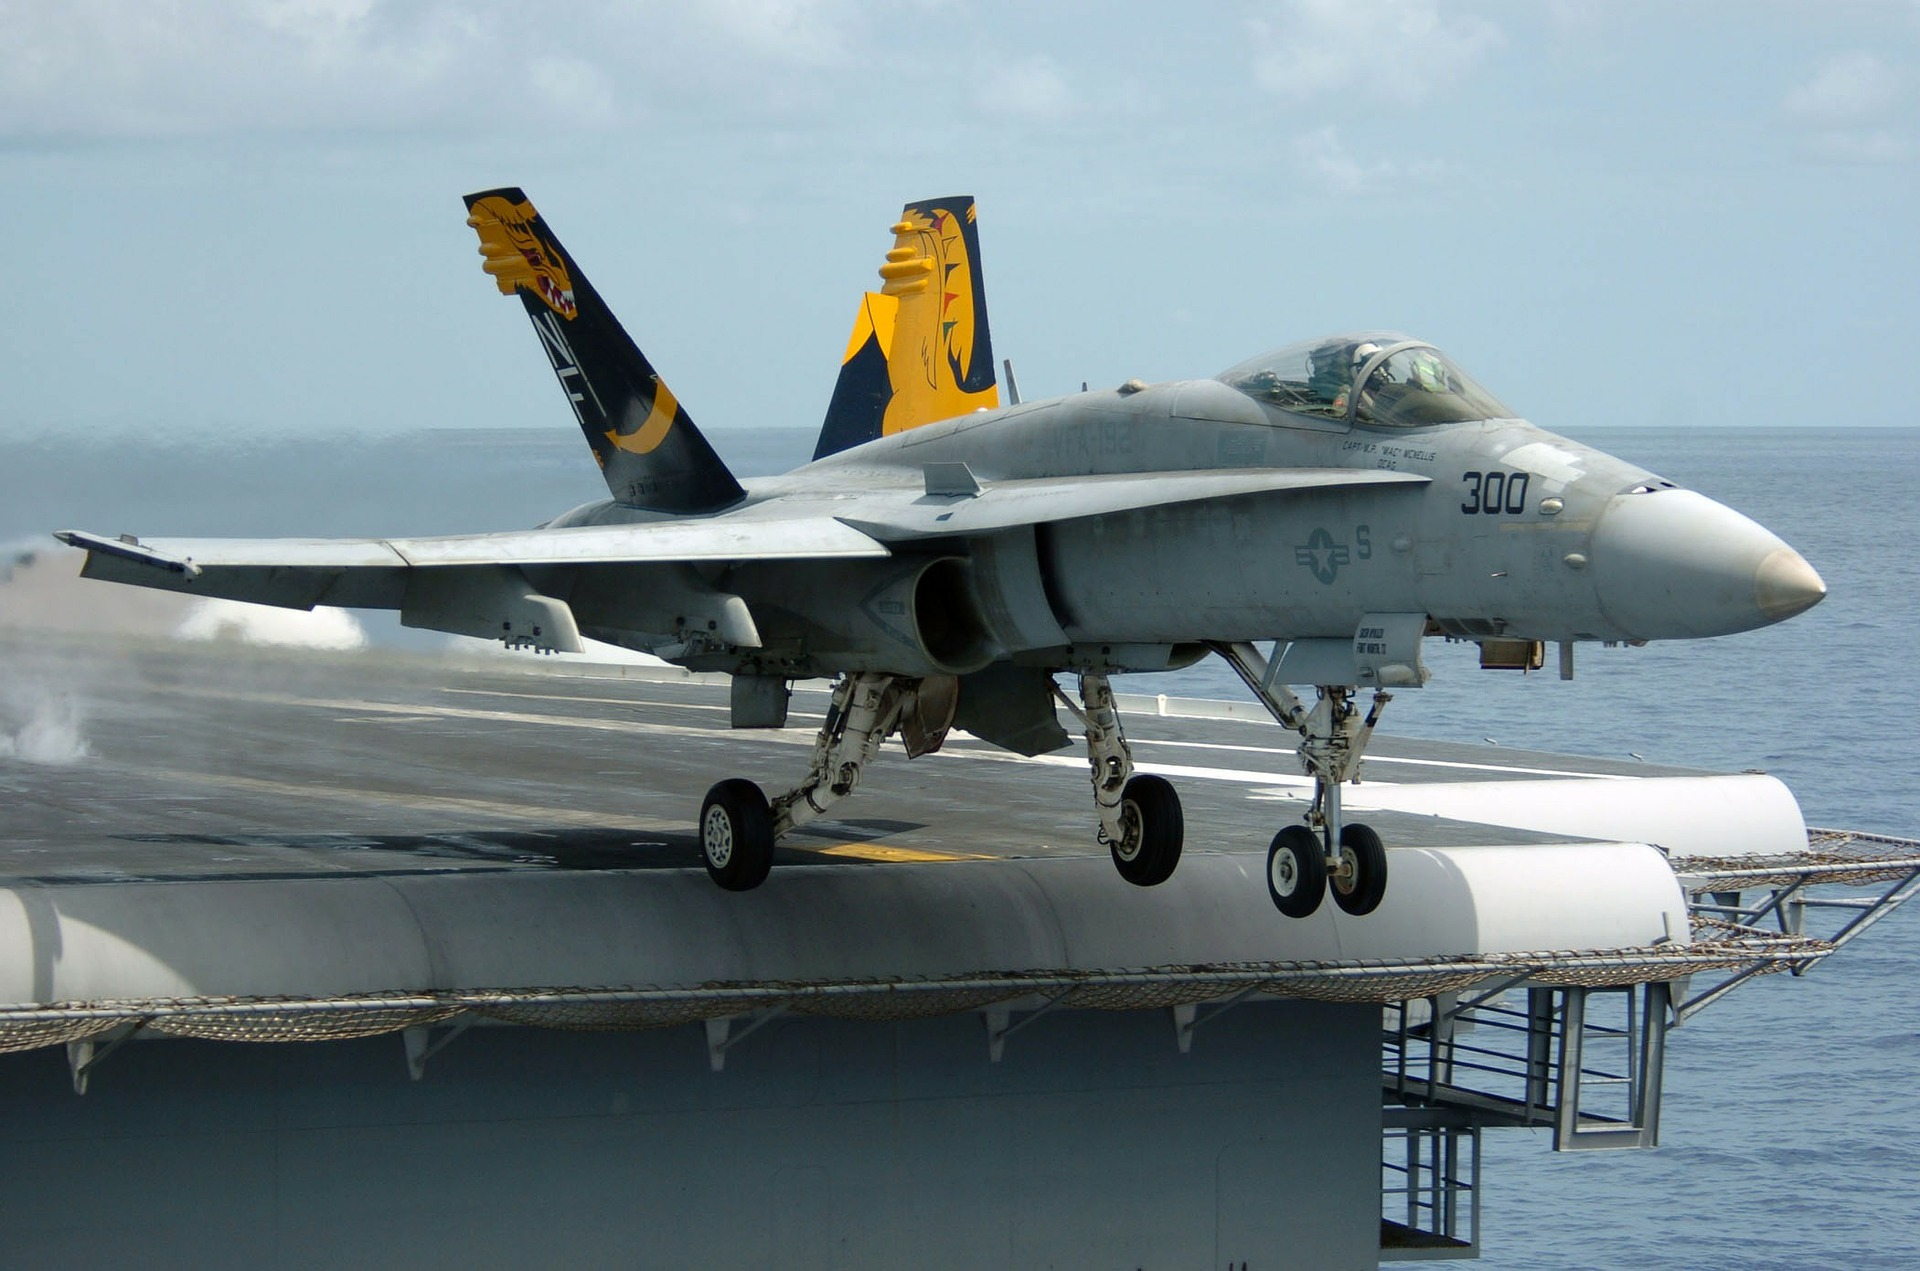 General 1920x1271 F/A-18 Hornet aircraft jet fighter navy aircraft carrier